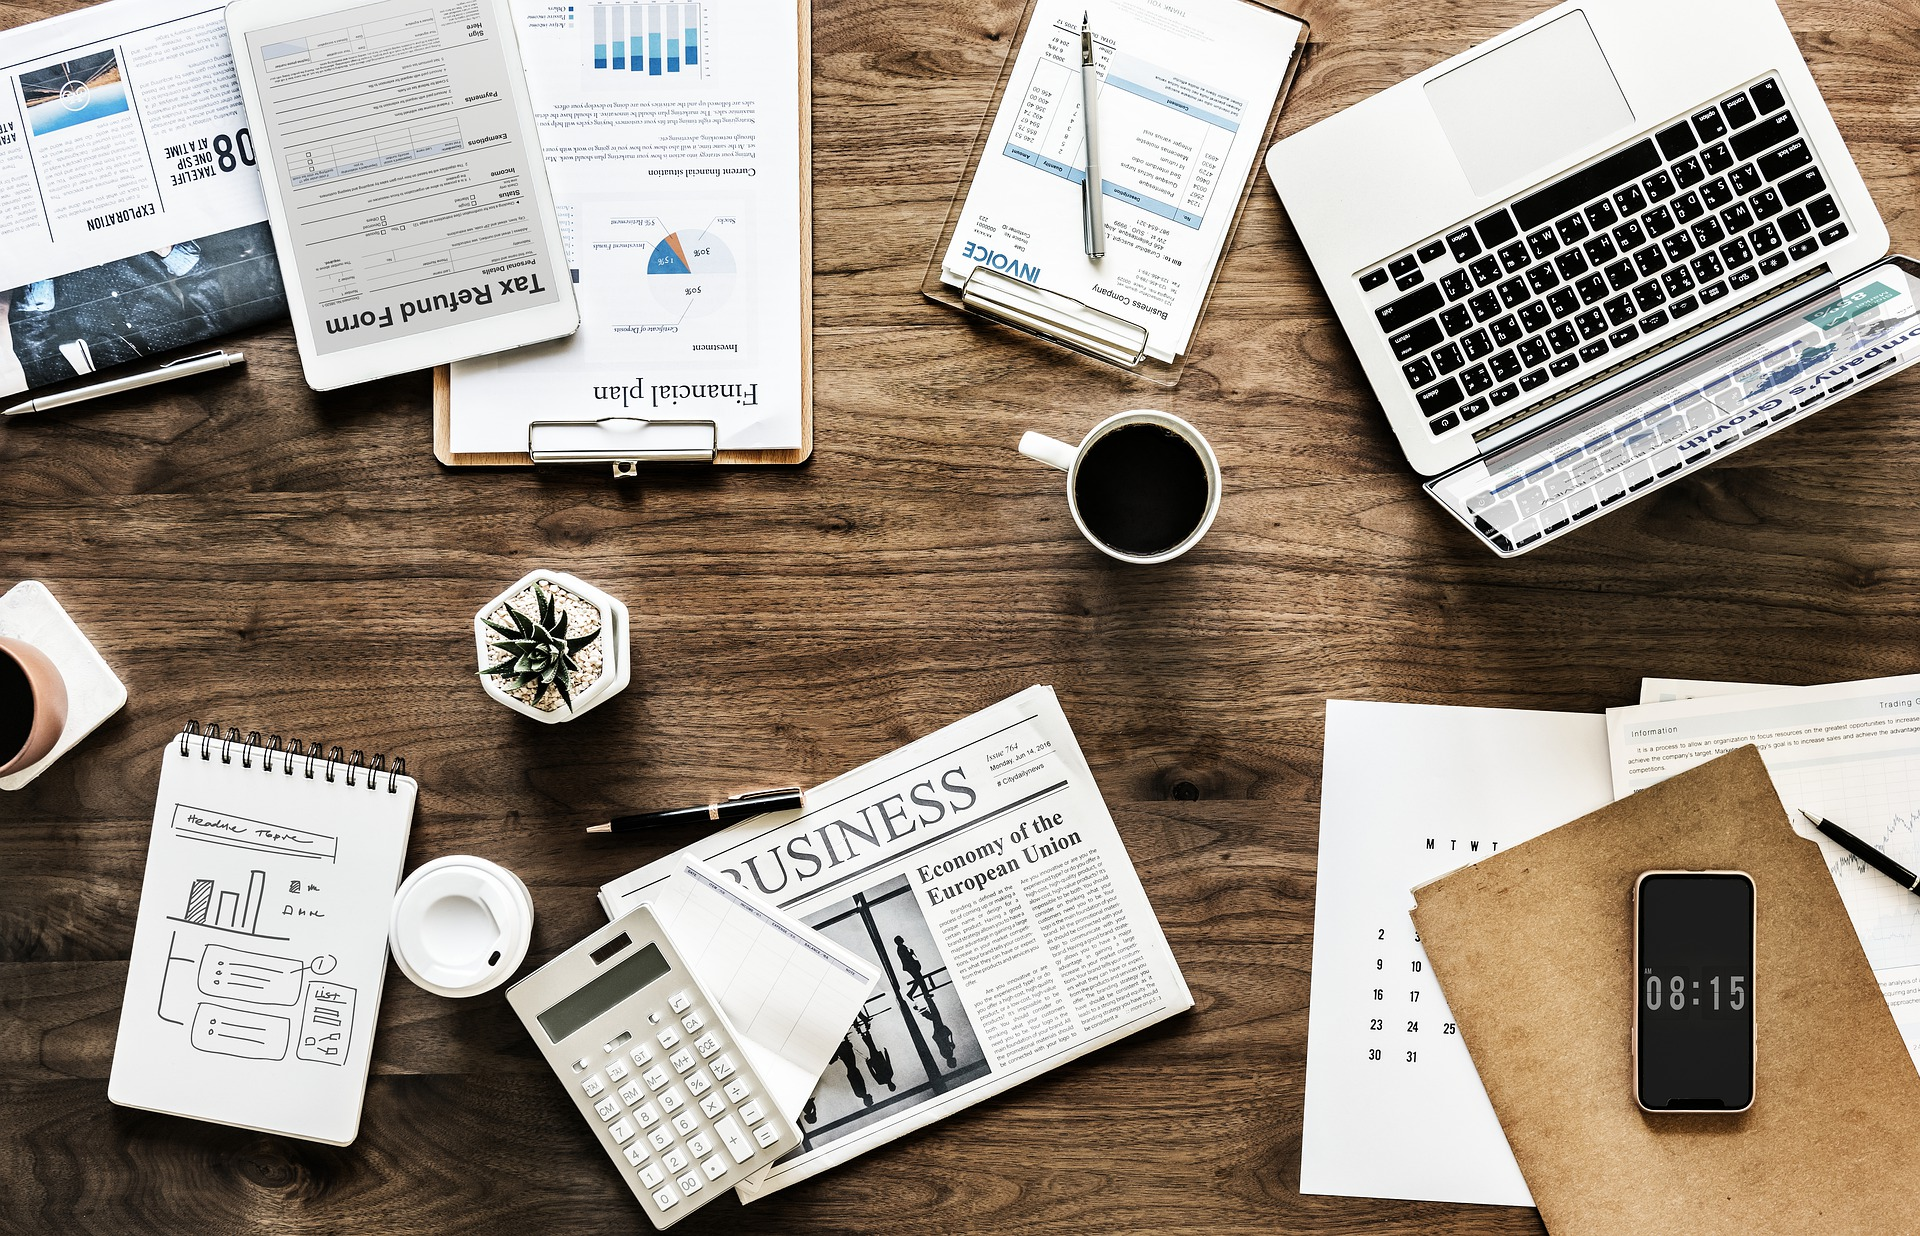 business plan small business starting your own business how to start planning how to create my own company